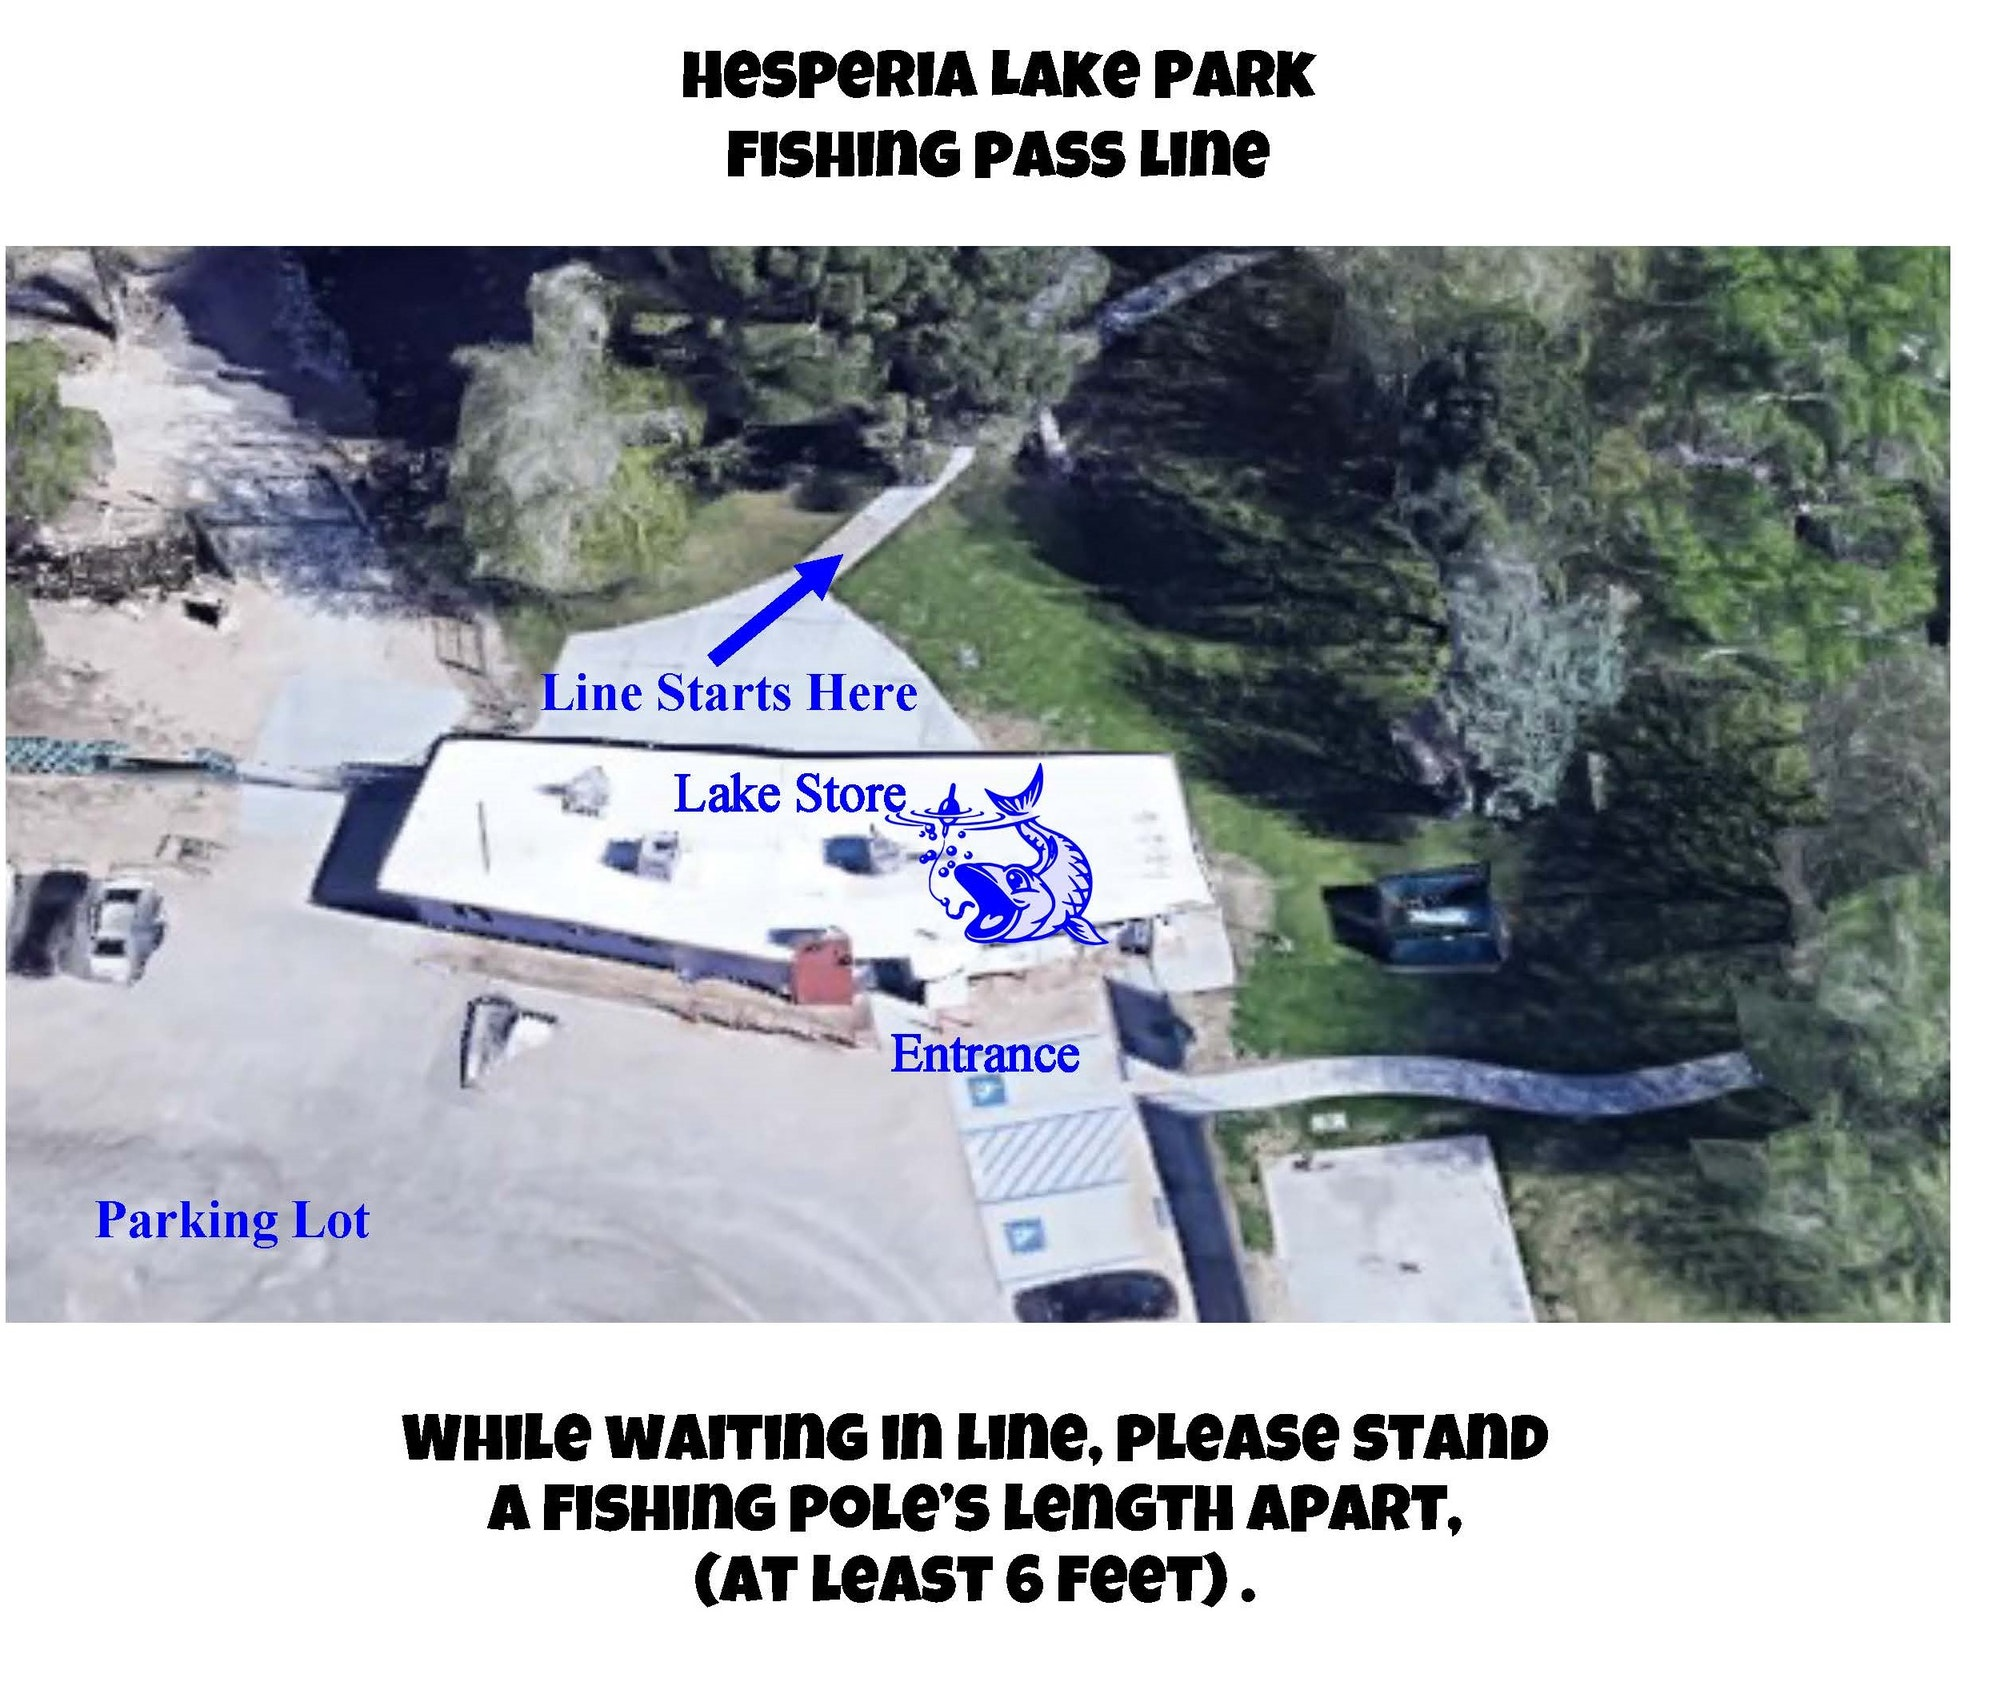 Bird's eye view of the store at Hesperia Lake Park showing where the line begins for fishing pass purchases, where to park, and which gate to enter from.